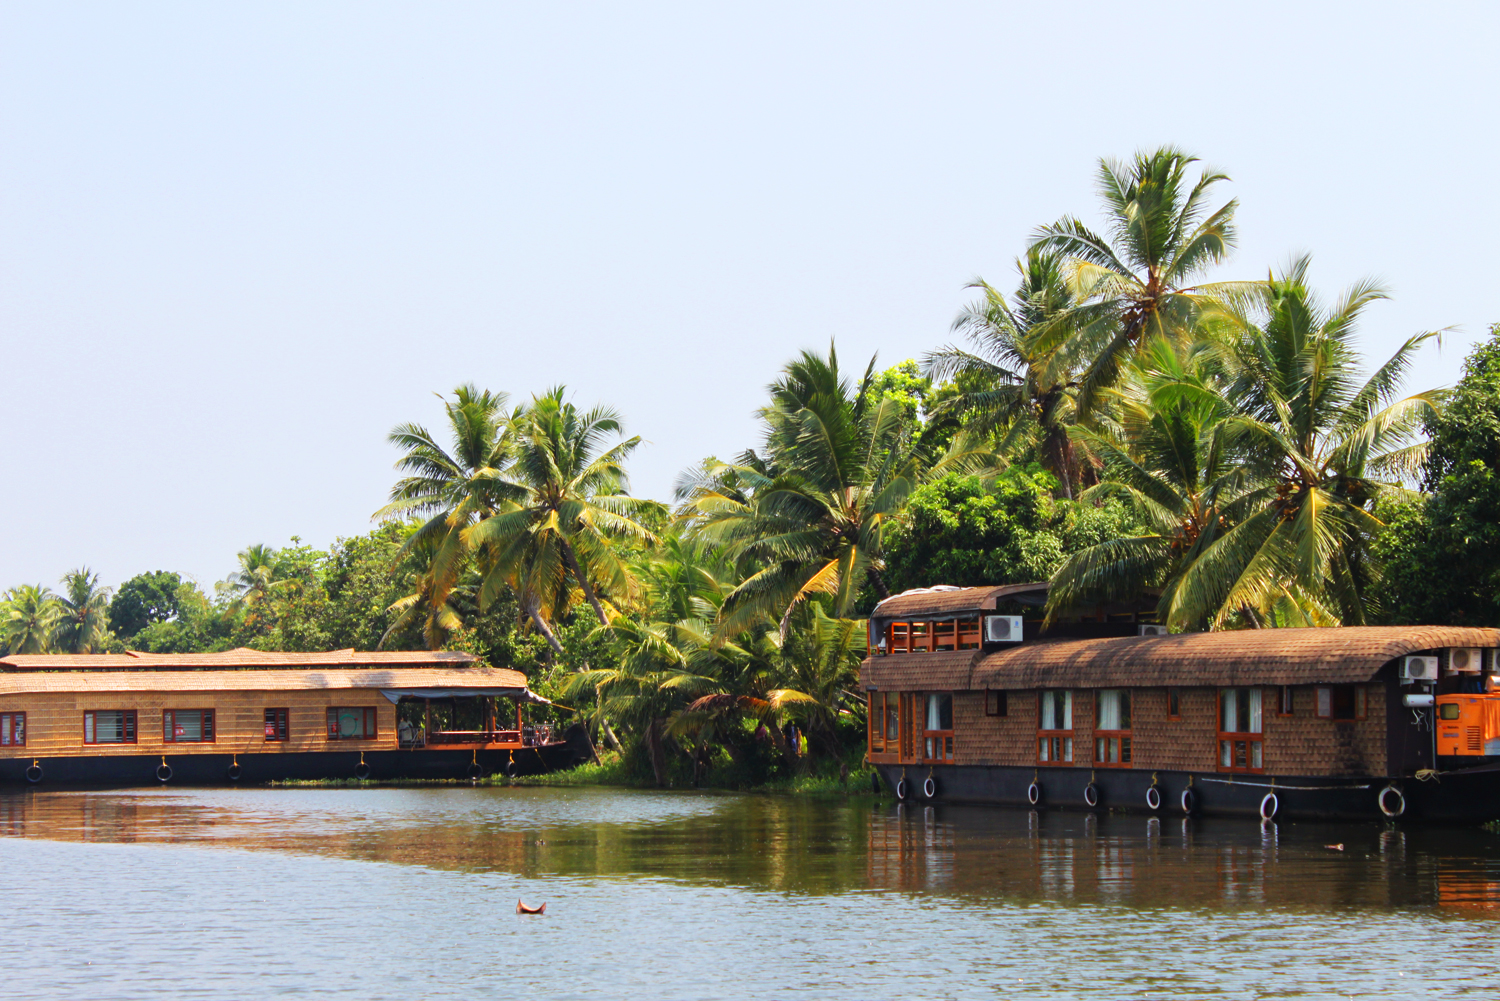 <strong> South India</strong><p>Houseboats, Backwaters & History  »</p>